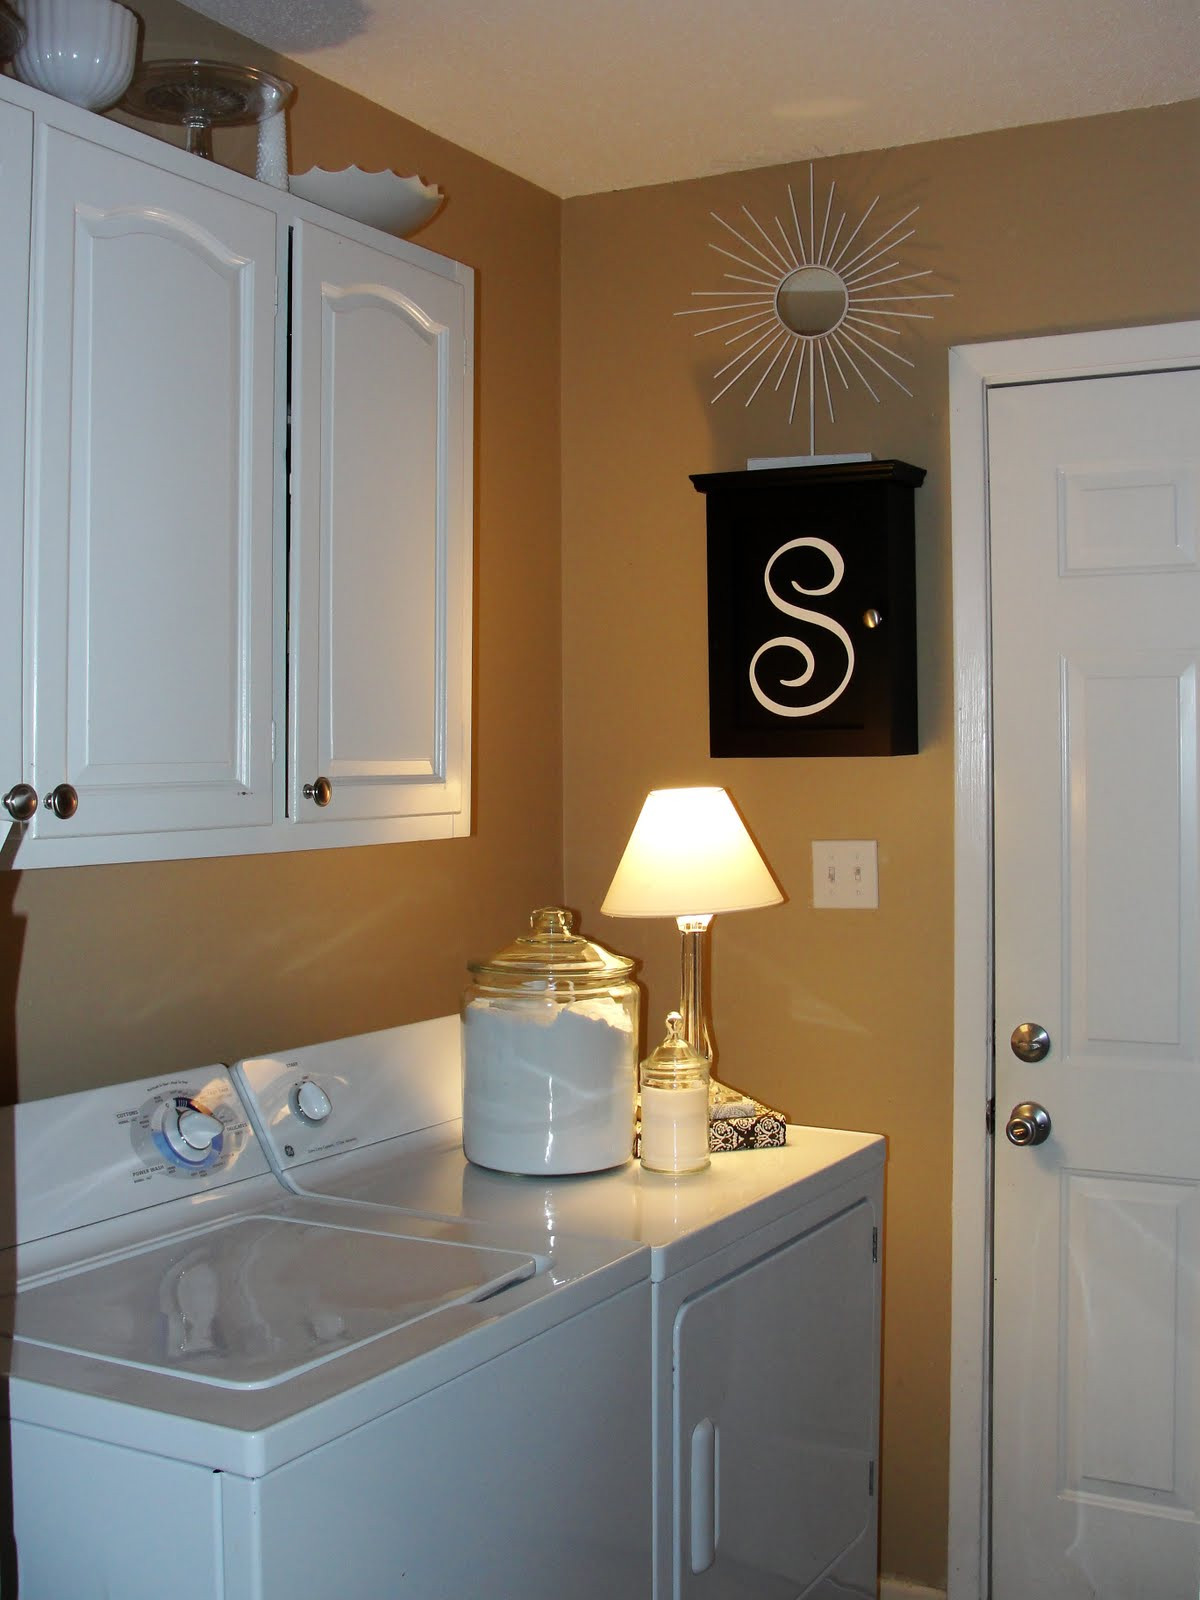 Best ideas about Laundry Room Makeover . Save or Pin Imperfectly Beautiful Laundry Room Mini Makeover Now.